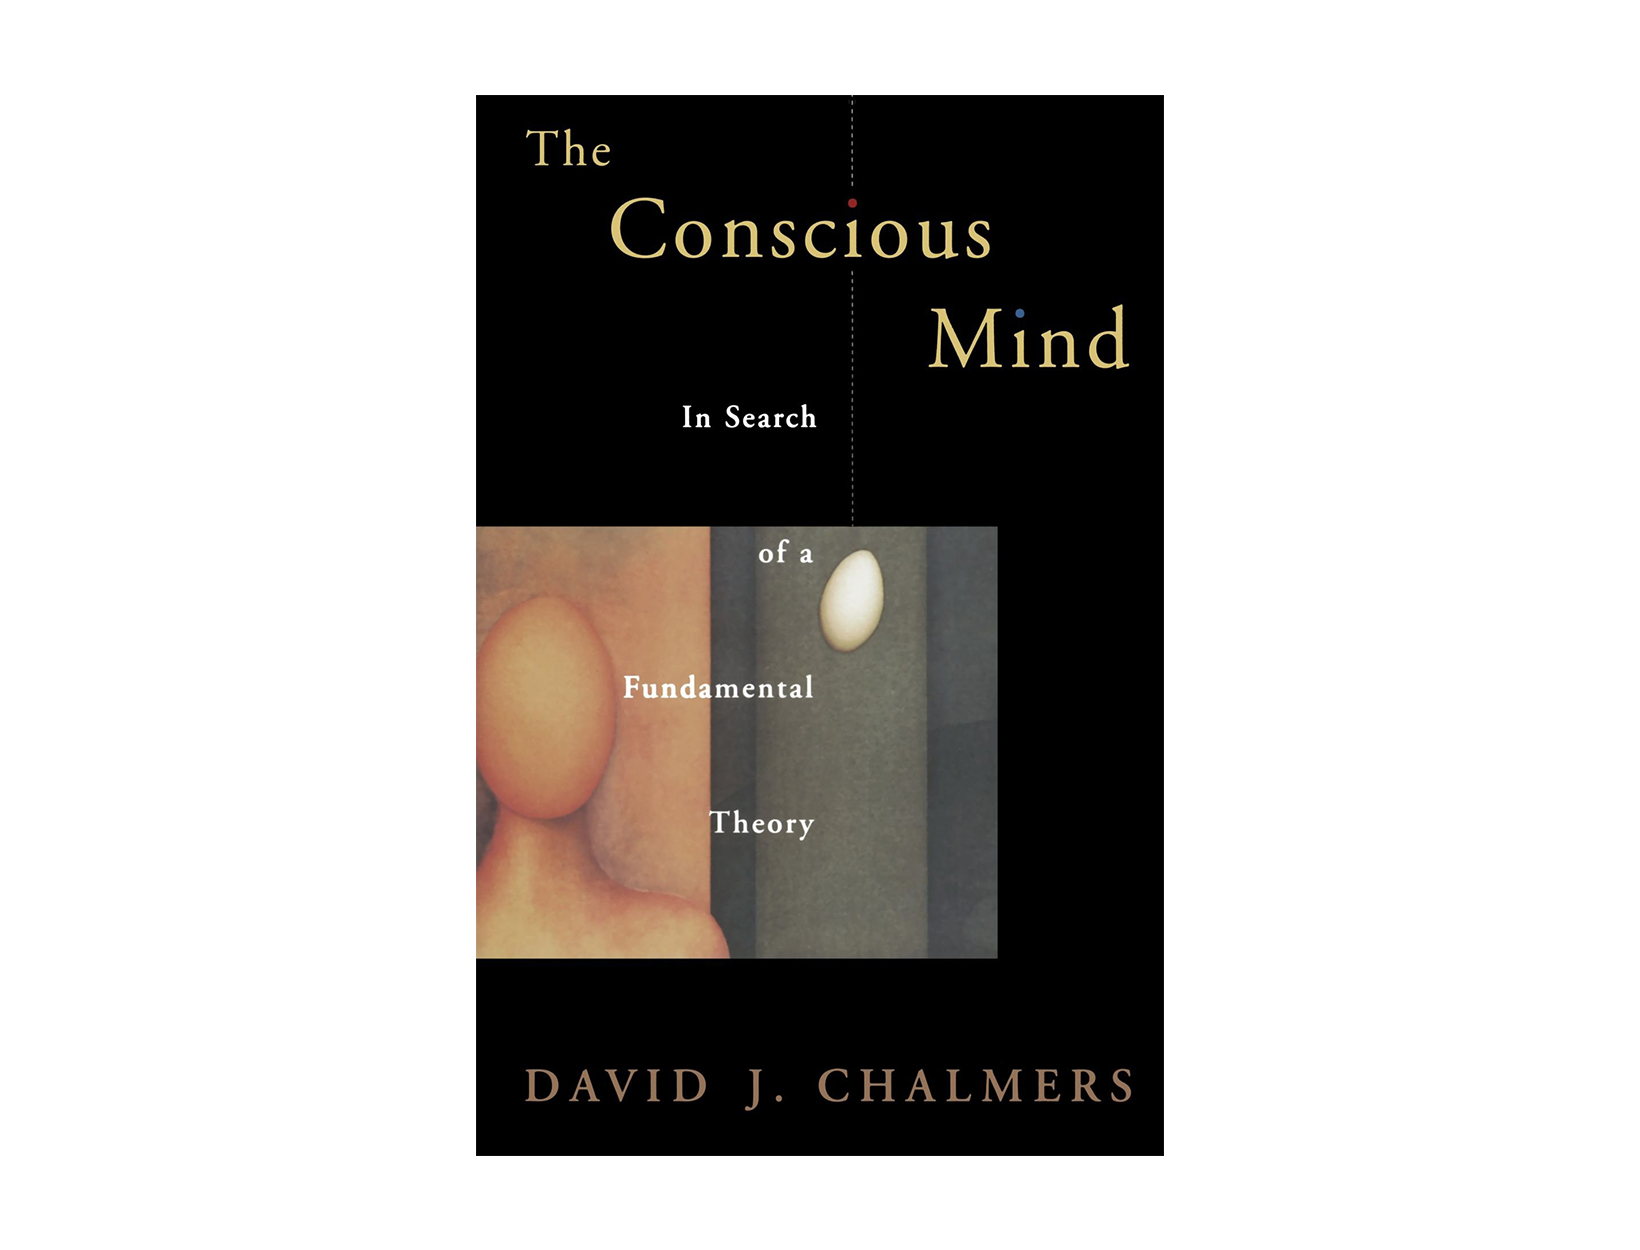 The Conscious Mind: In Search of a Fundamental Theory by David Chalmers